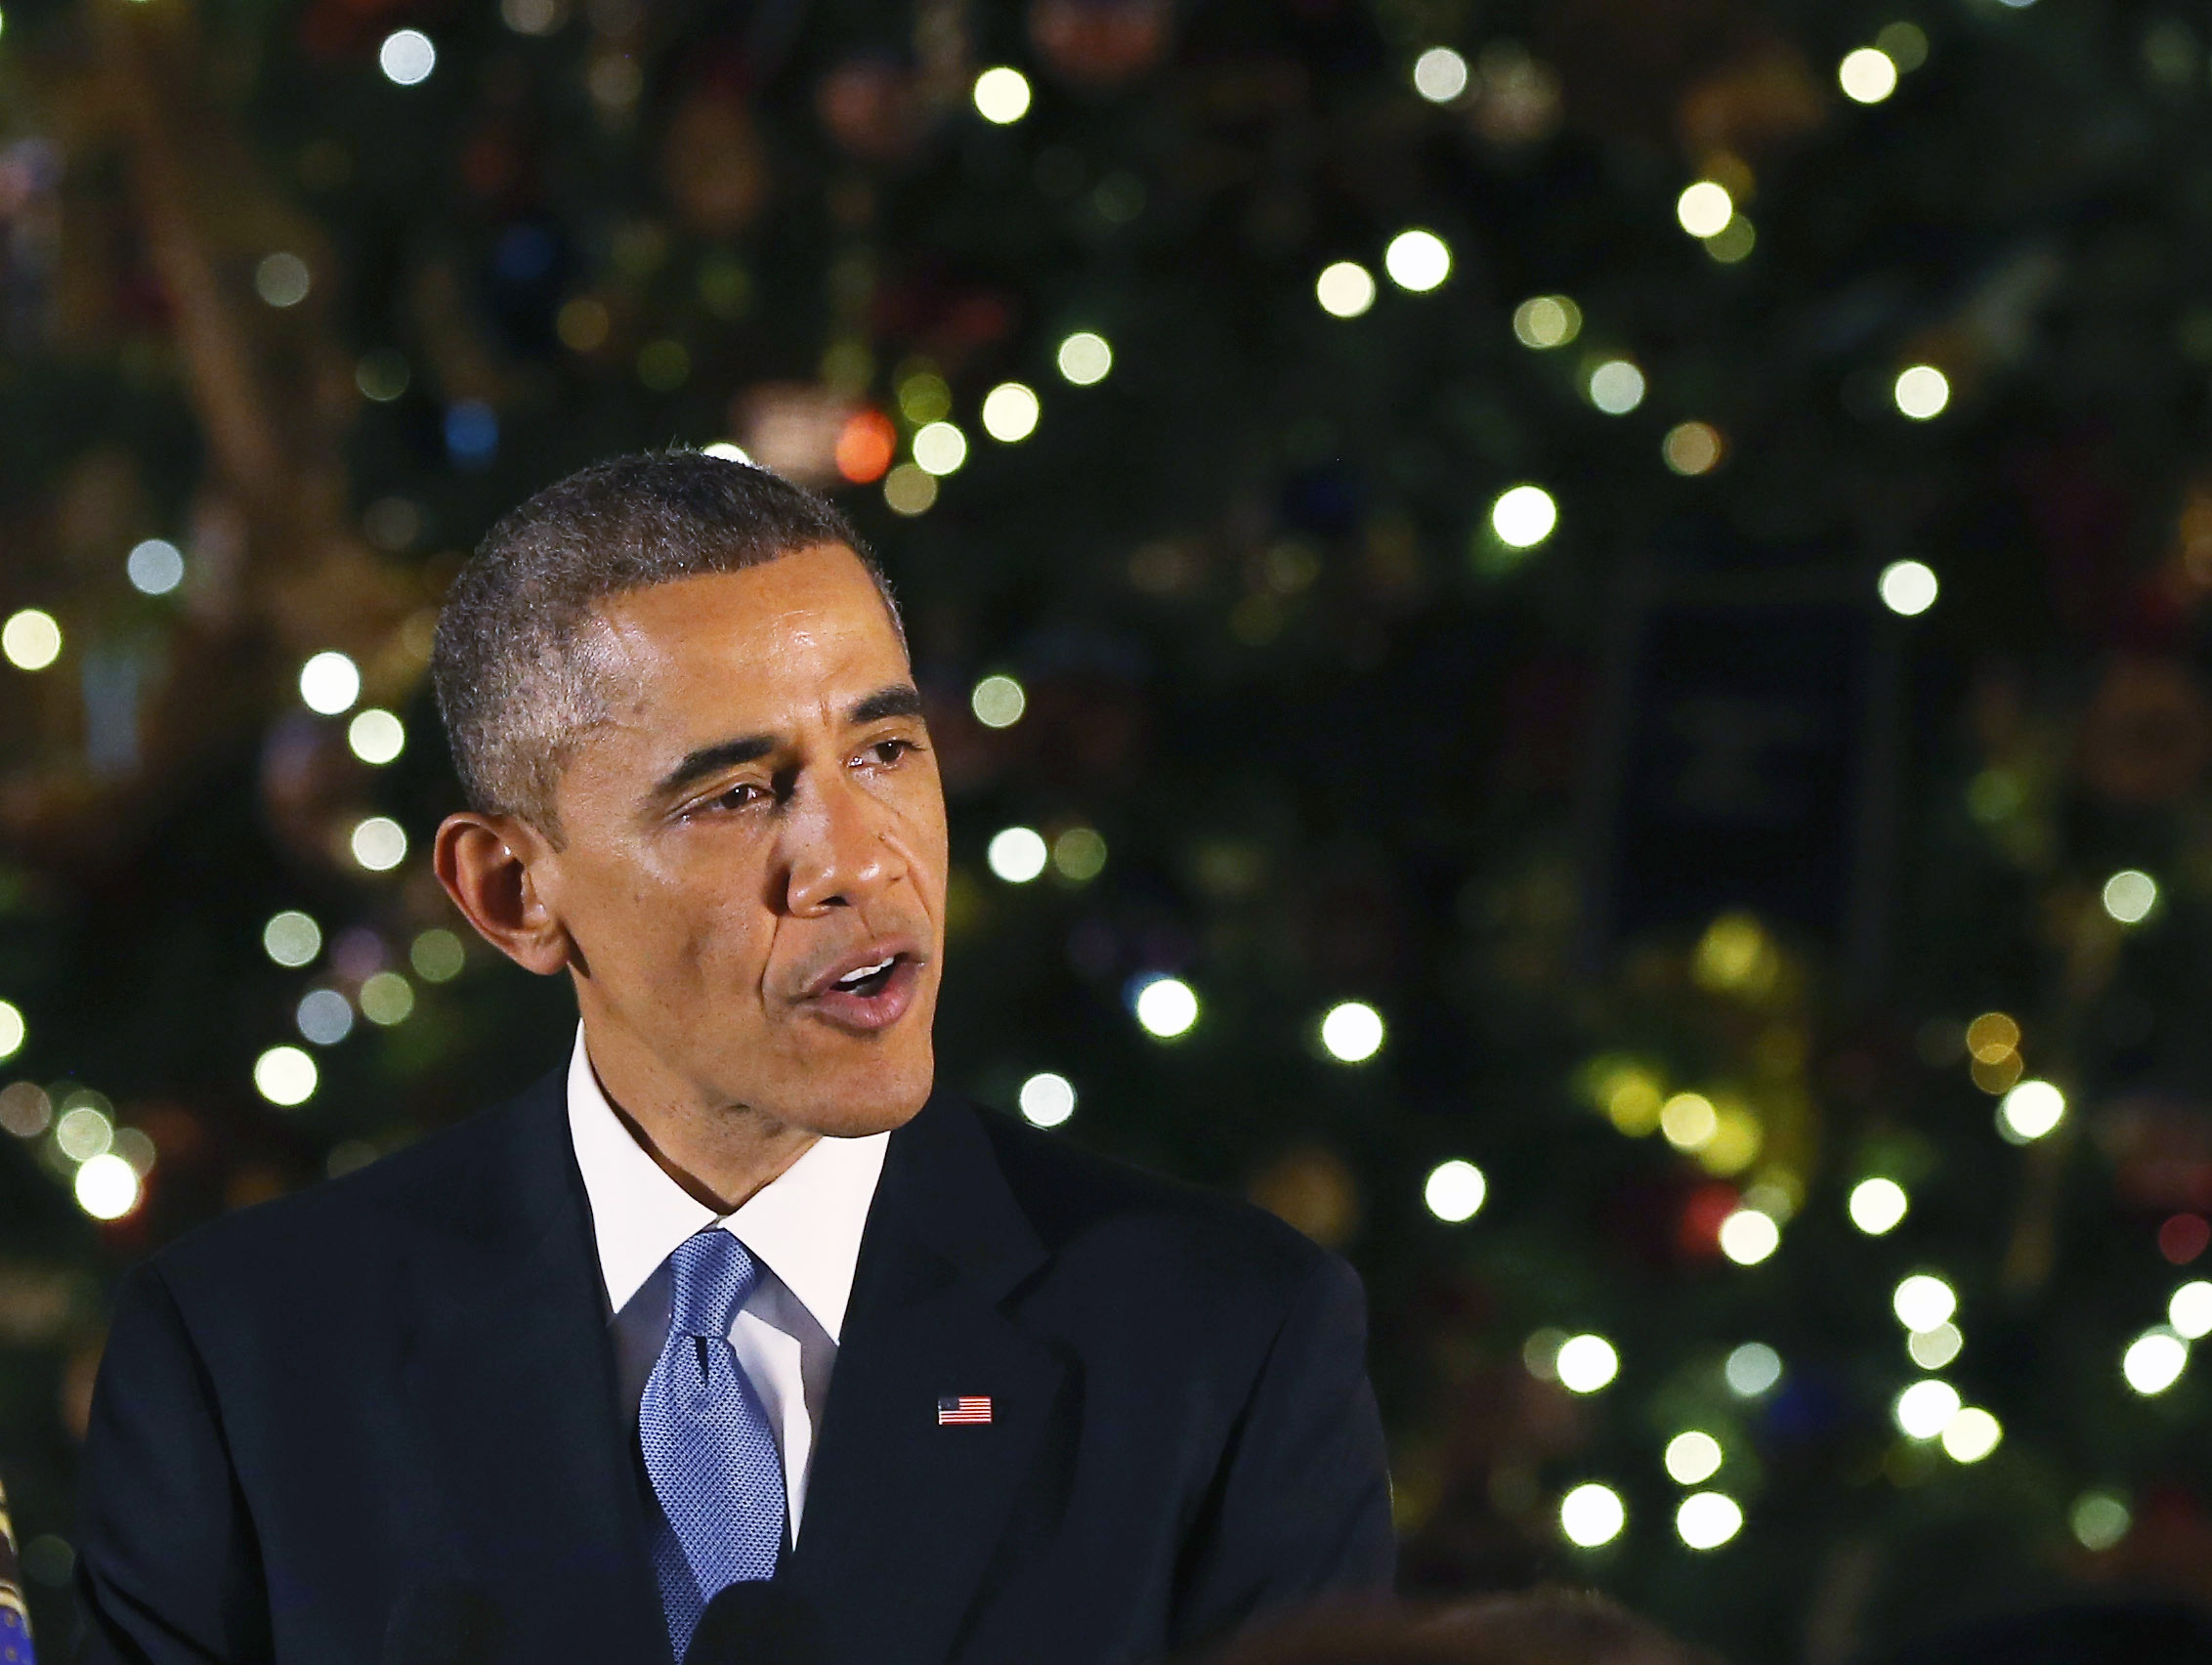 U.S. President Barack Obama speaks during the White House Hanukkak Party, December 17, 2014 in Washington, DC.